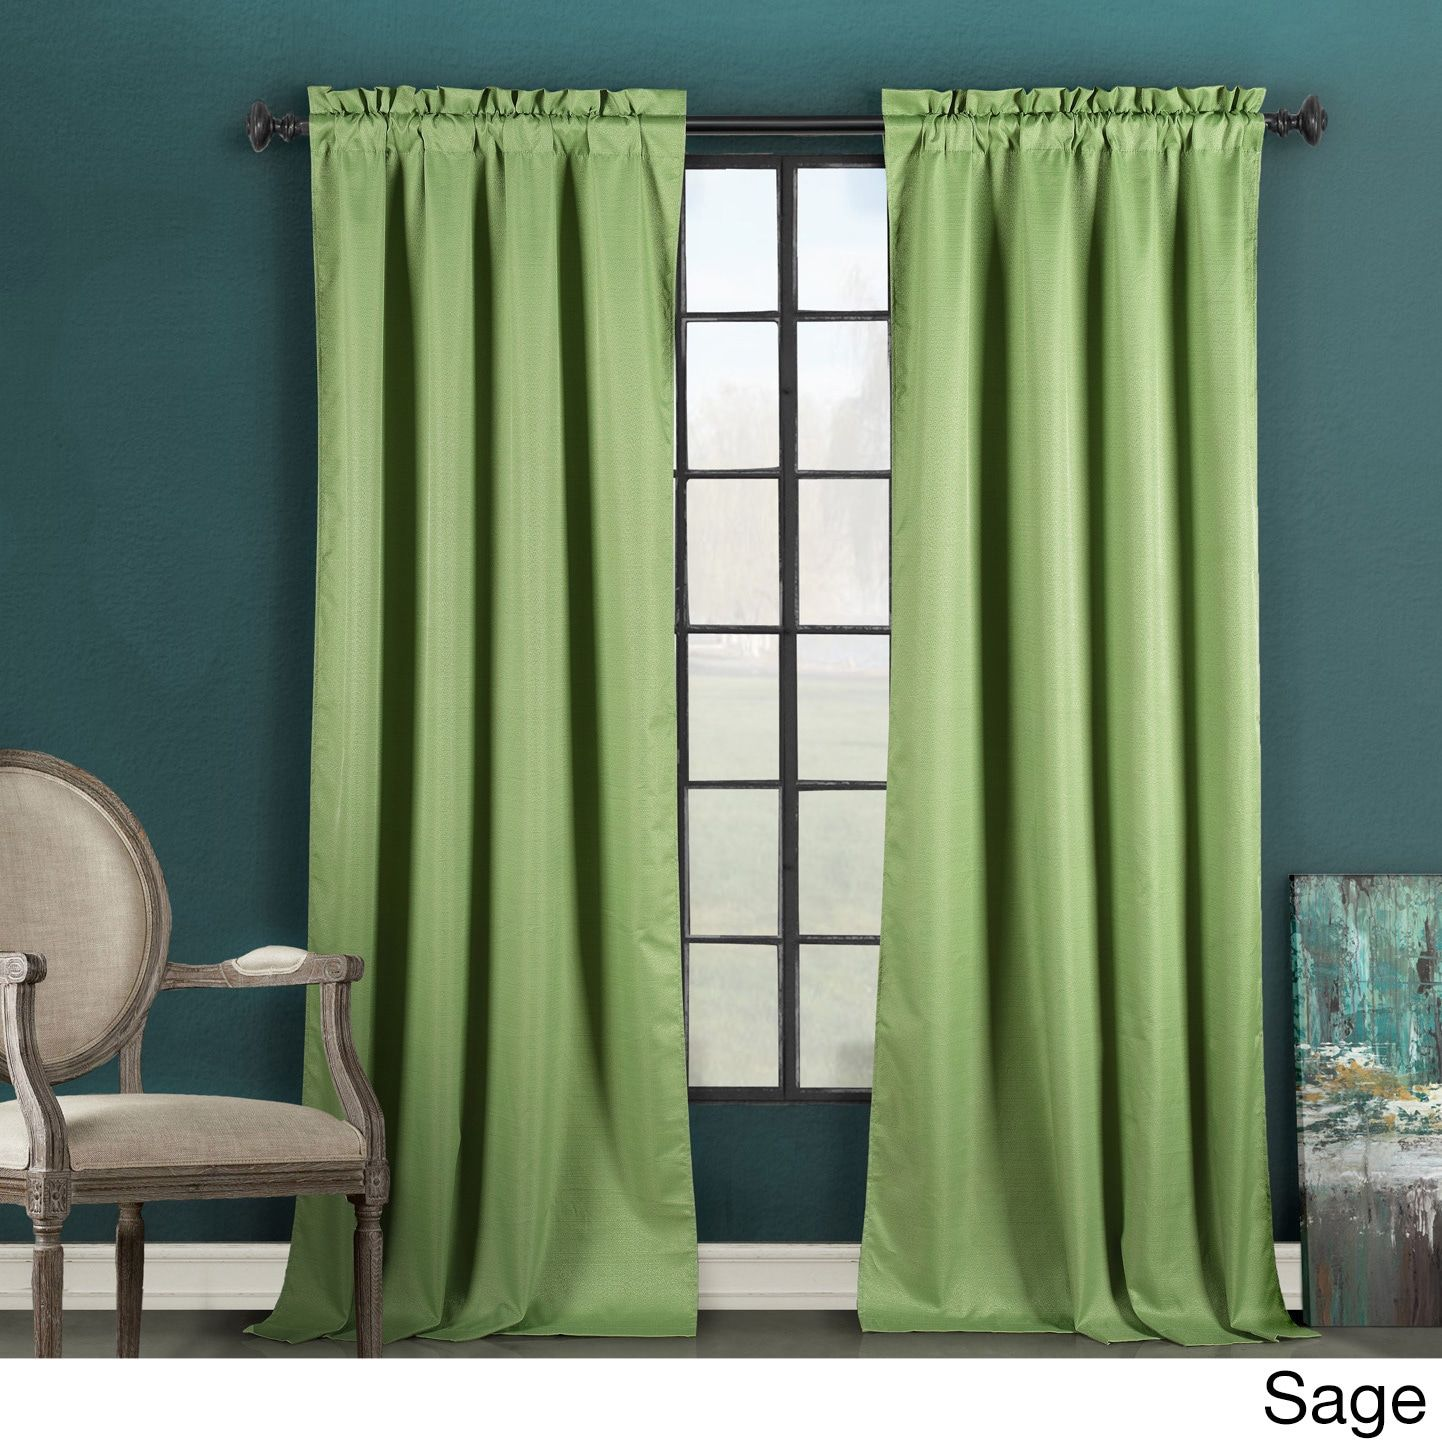 Duck River Thermal Insulated Blackout Curtain Panel (63 Black), Size 84  Inches (Polyester, Solid)